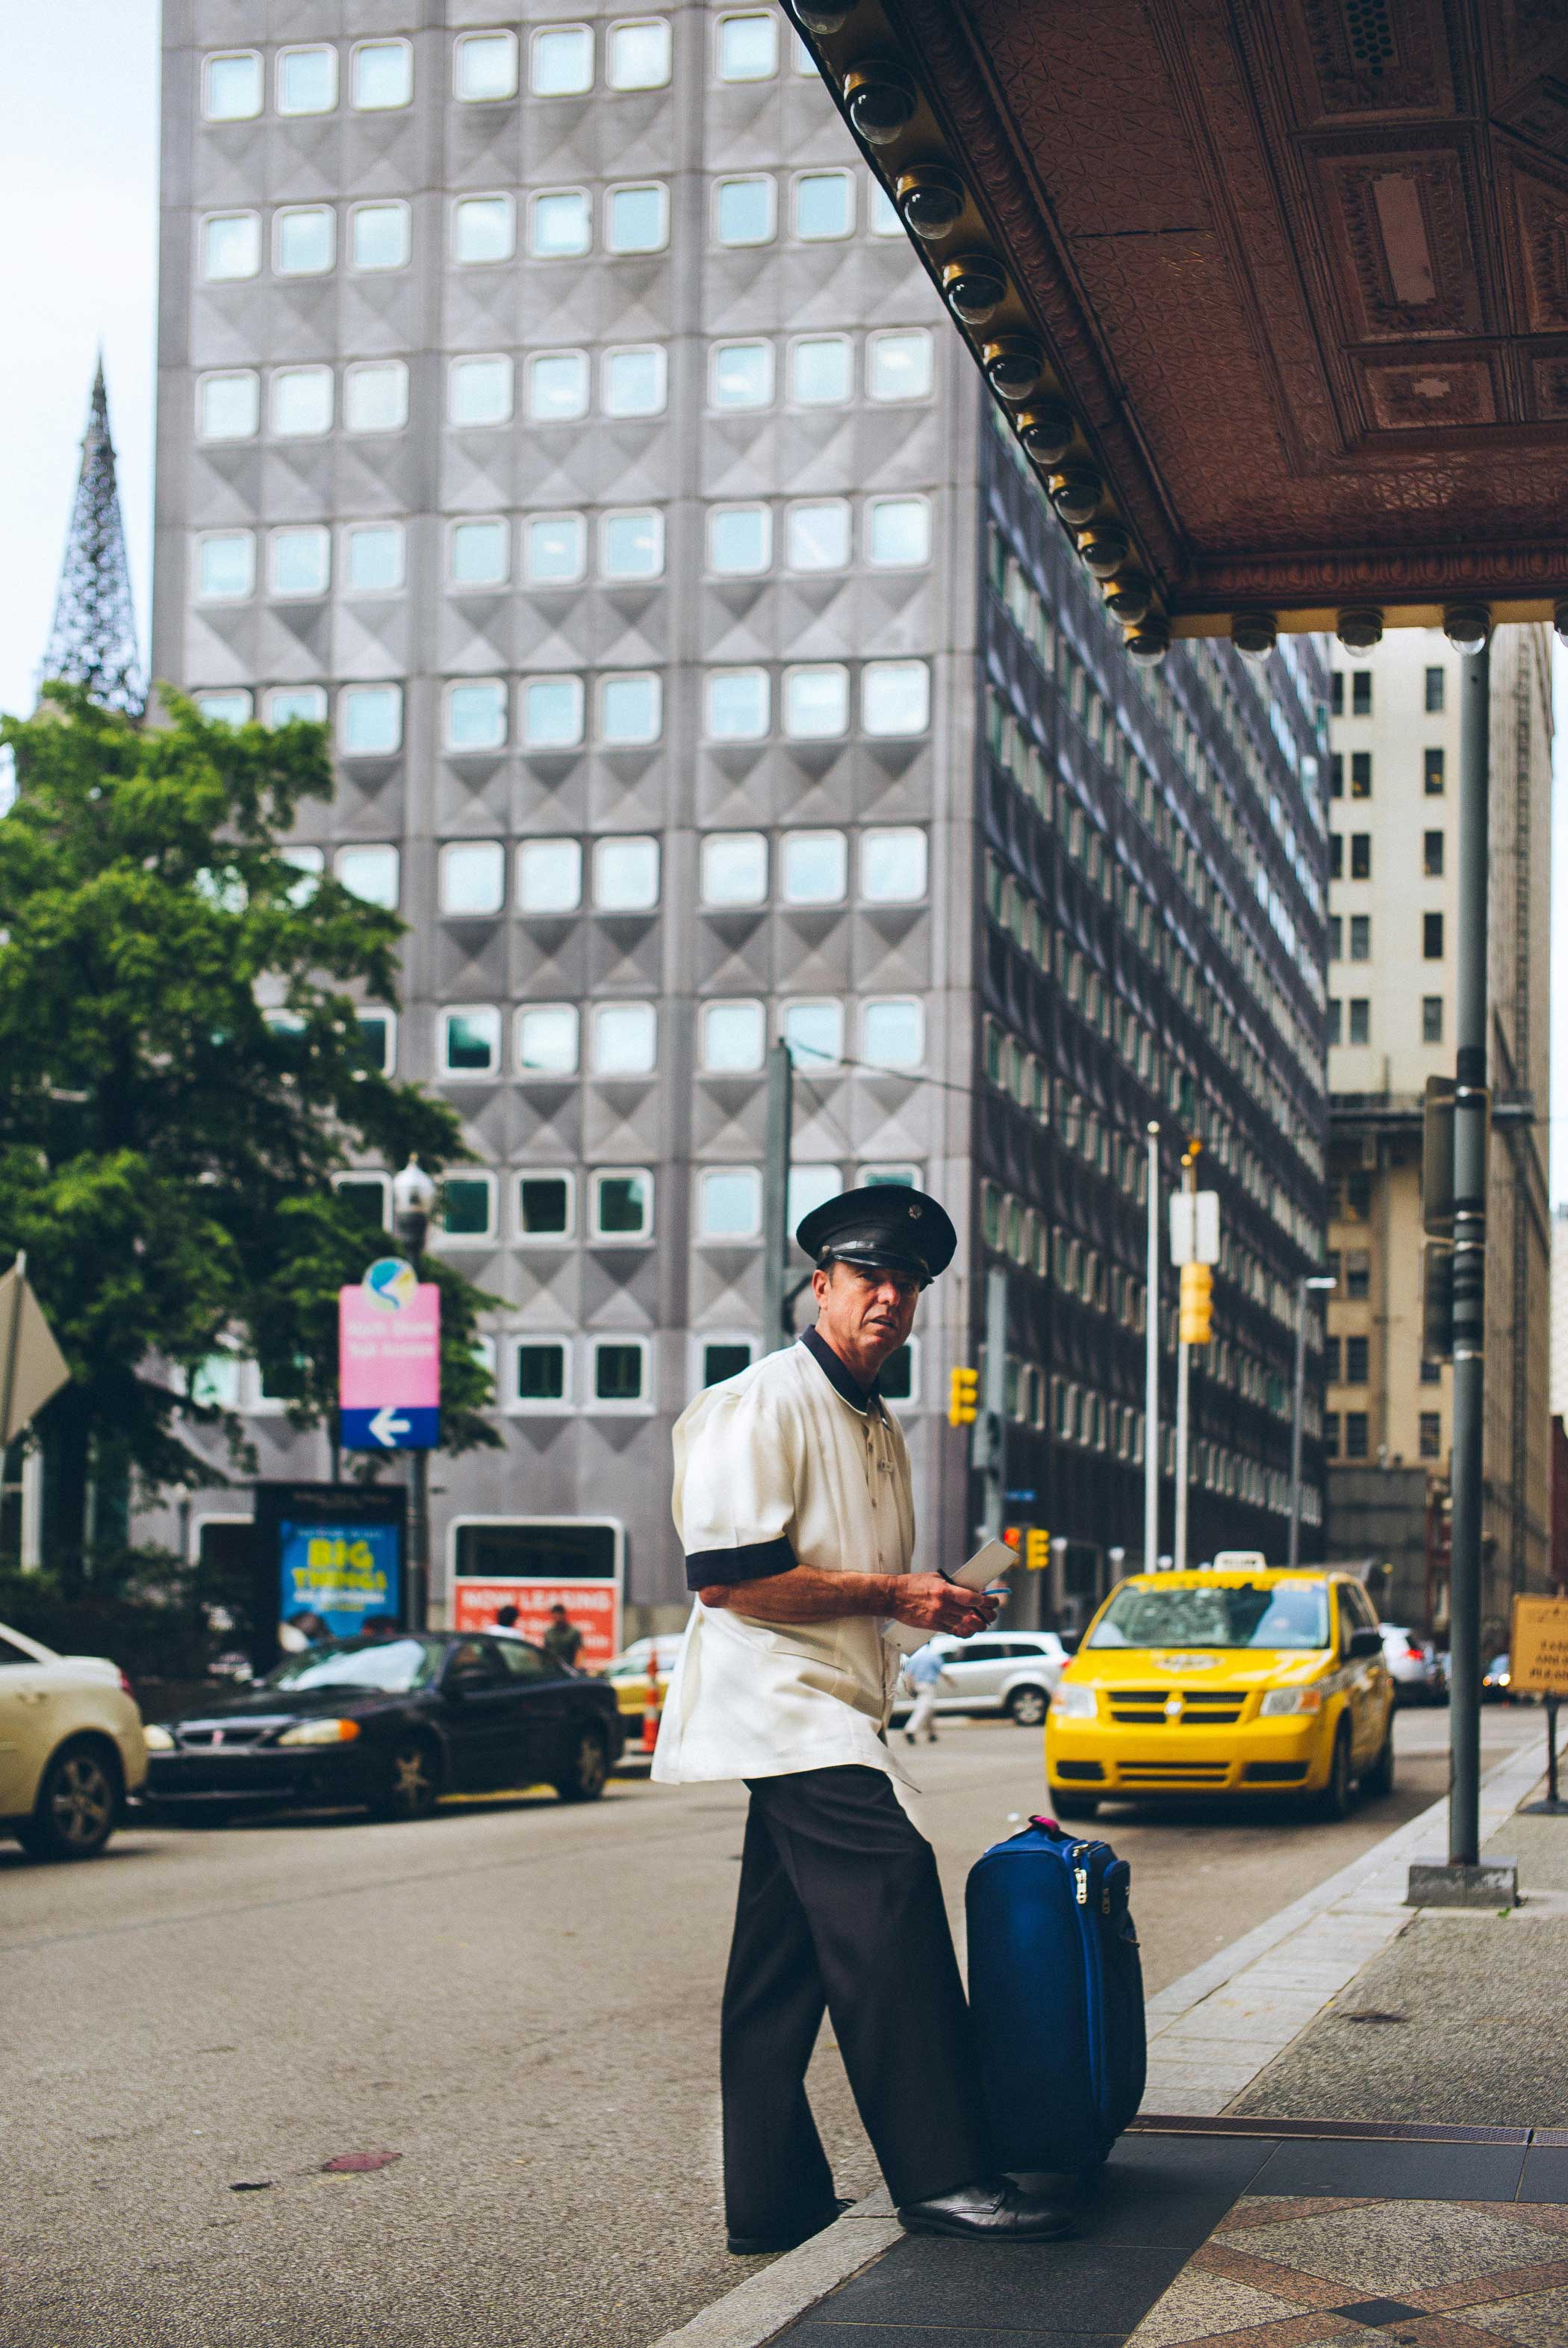 A doorman at the Omni William Penn Hotel on June 24, 2015.